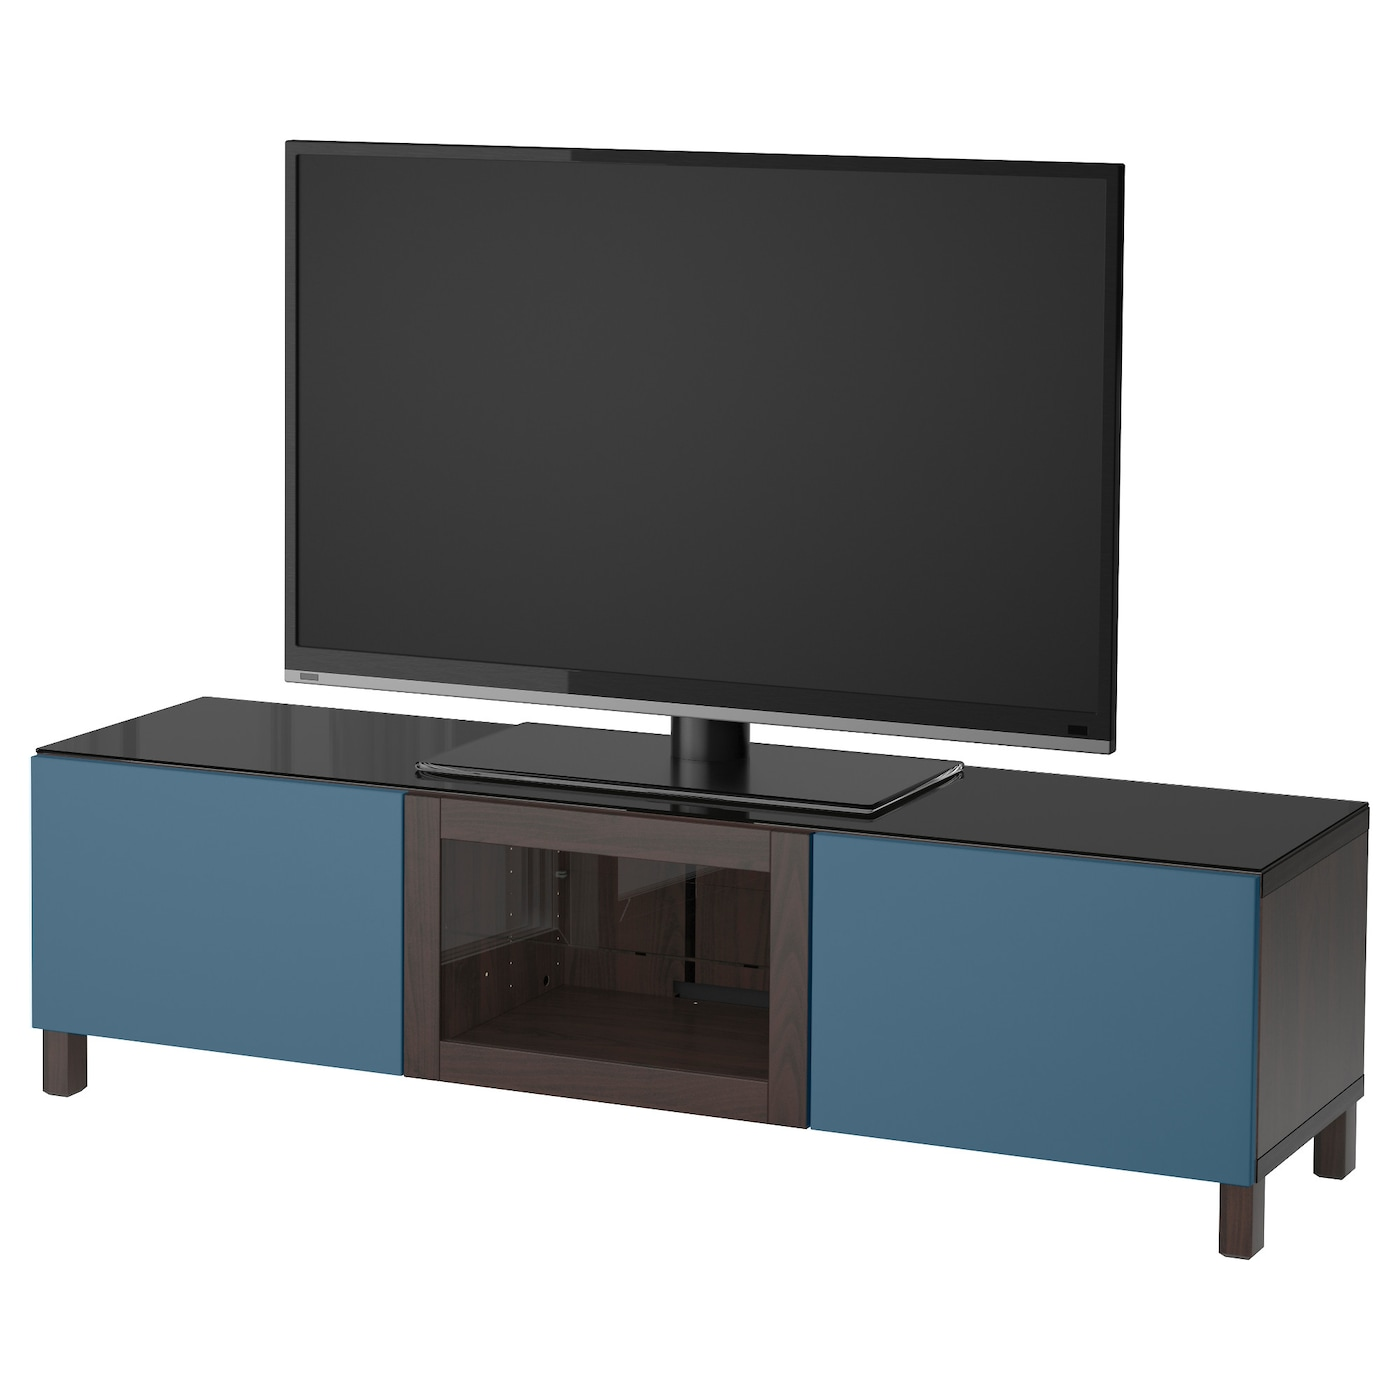 Best Tv Bench With Doors Black Brown Valviken Dark Blue Clear Glass 180x40x48 Cm Ikea